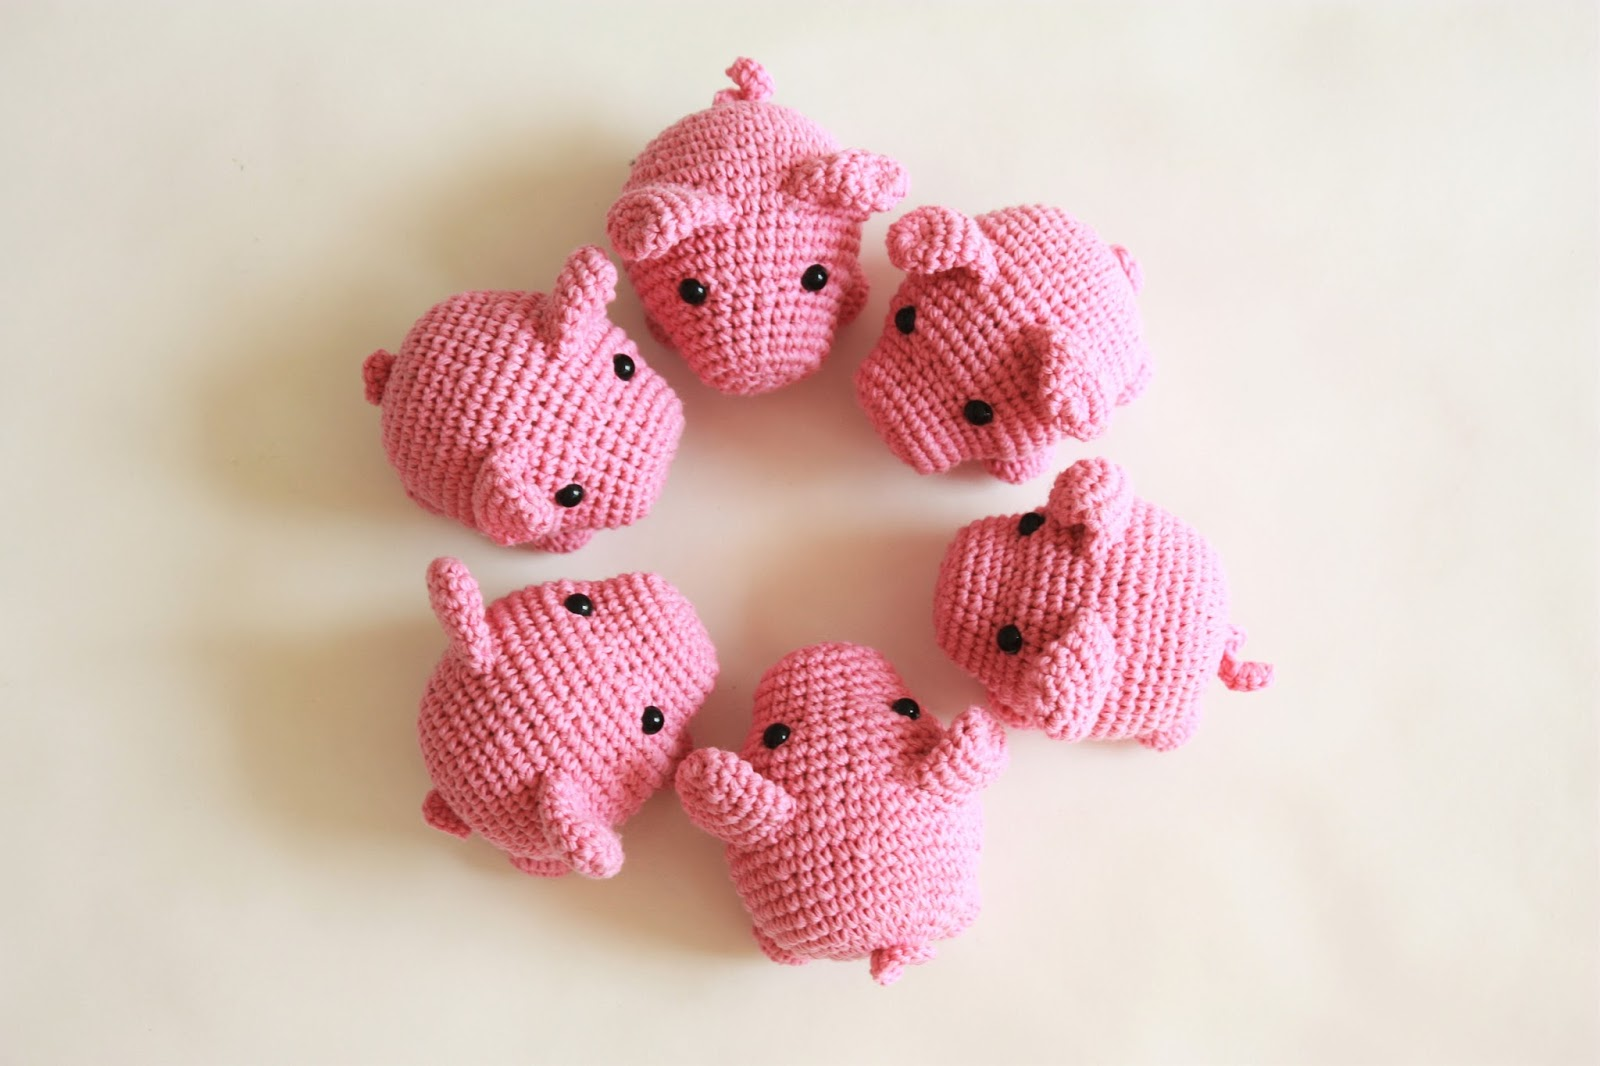 Happyamigurumi: New Amigurumi Pattern : Little Pig PDF Tutorial now ...